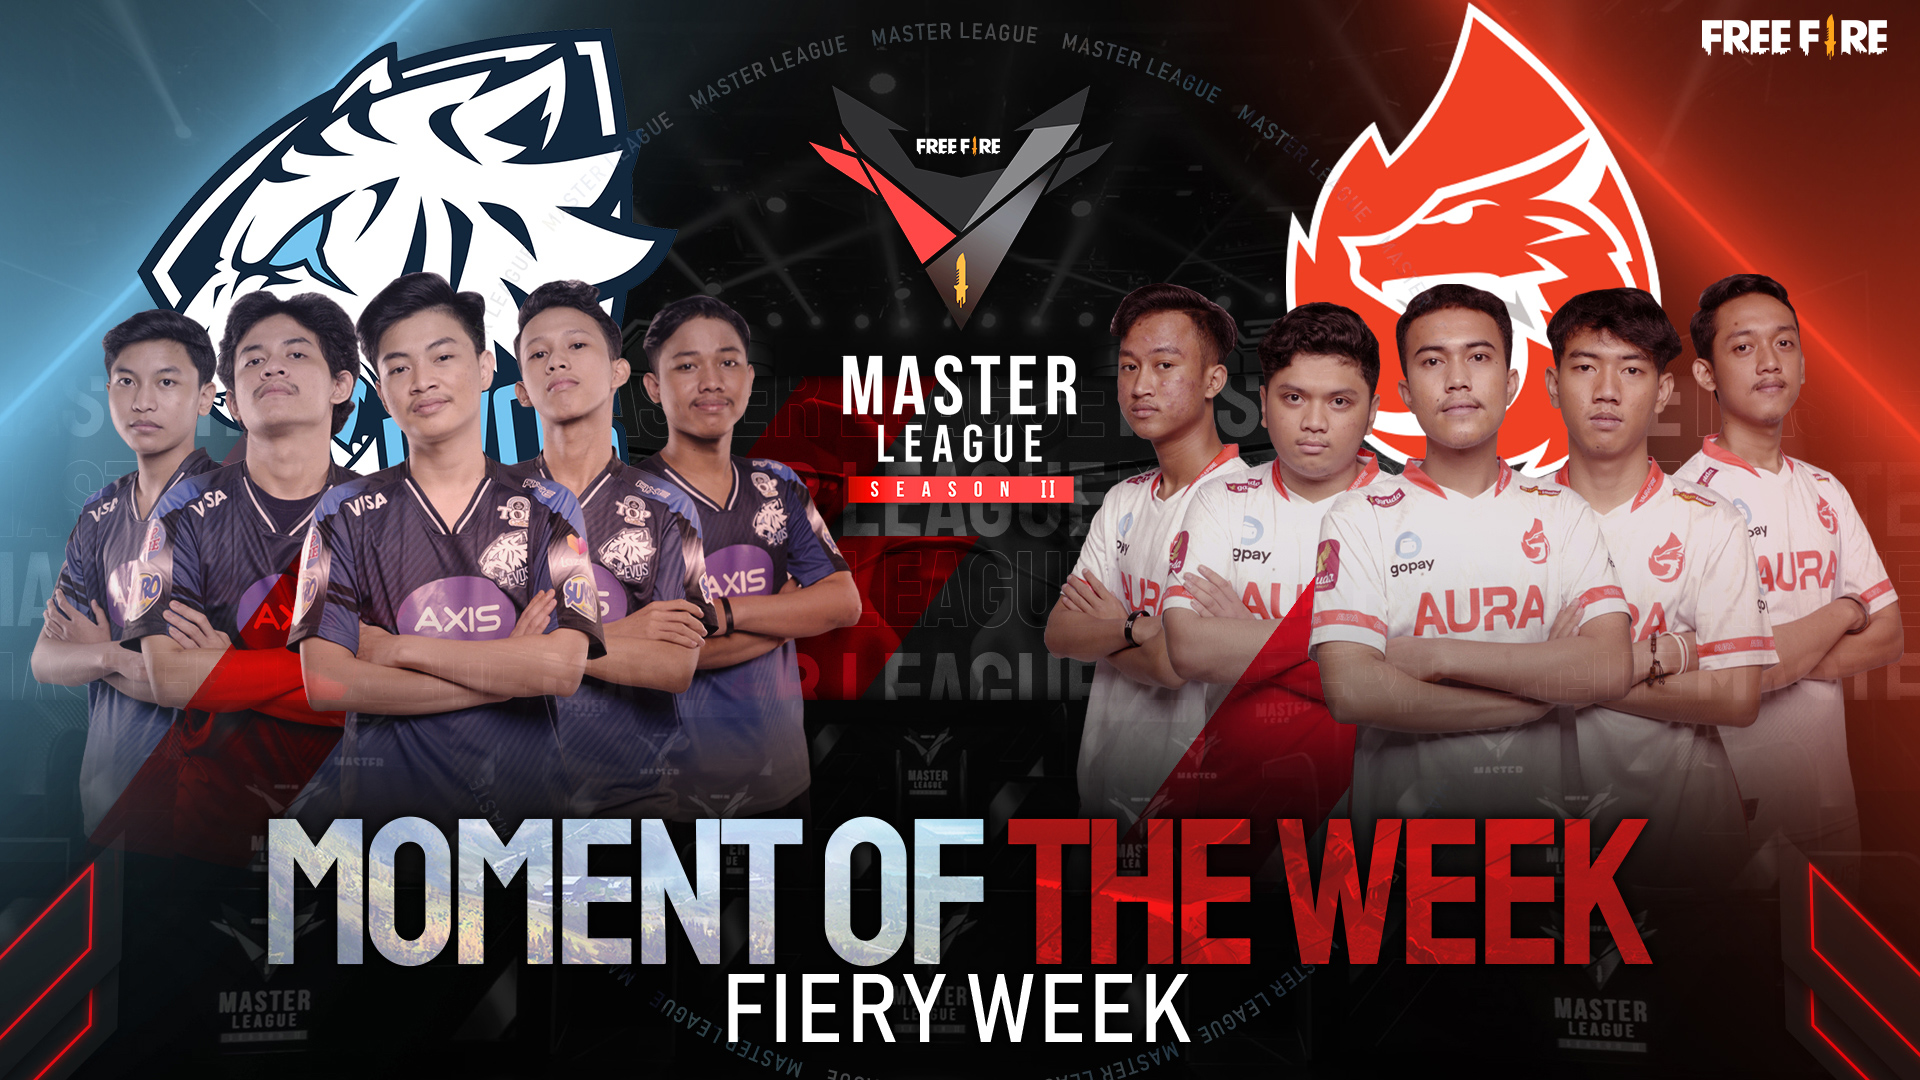 Moment of the Week #2 Fiery Week – FFML Season II